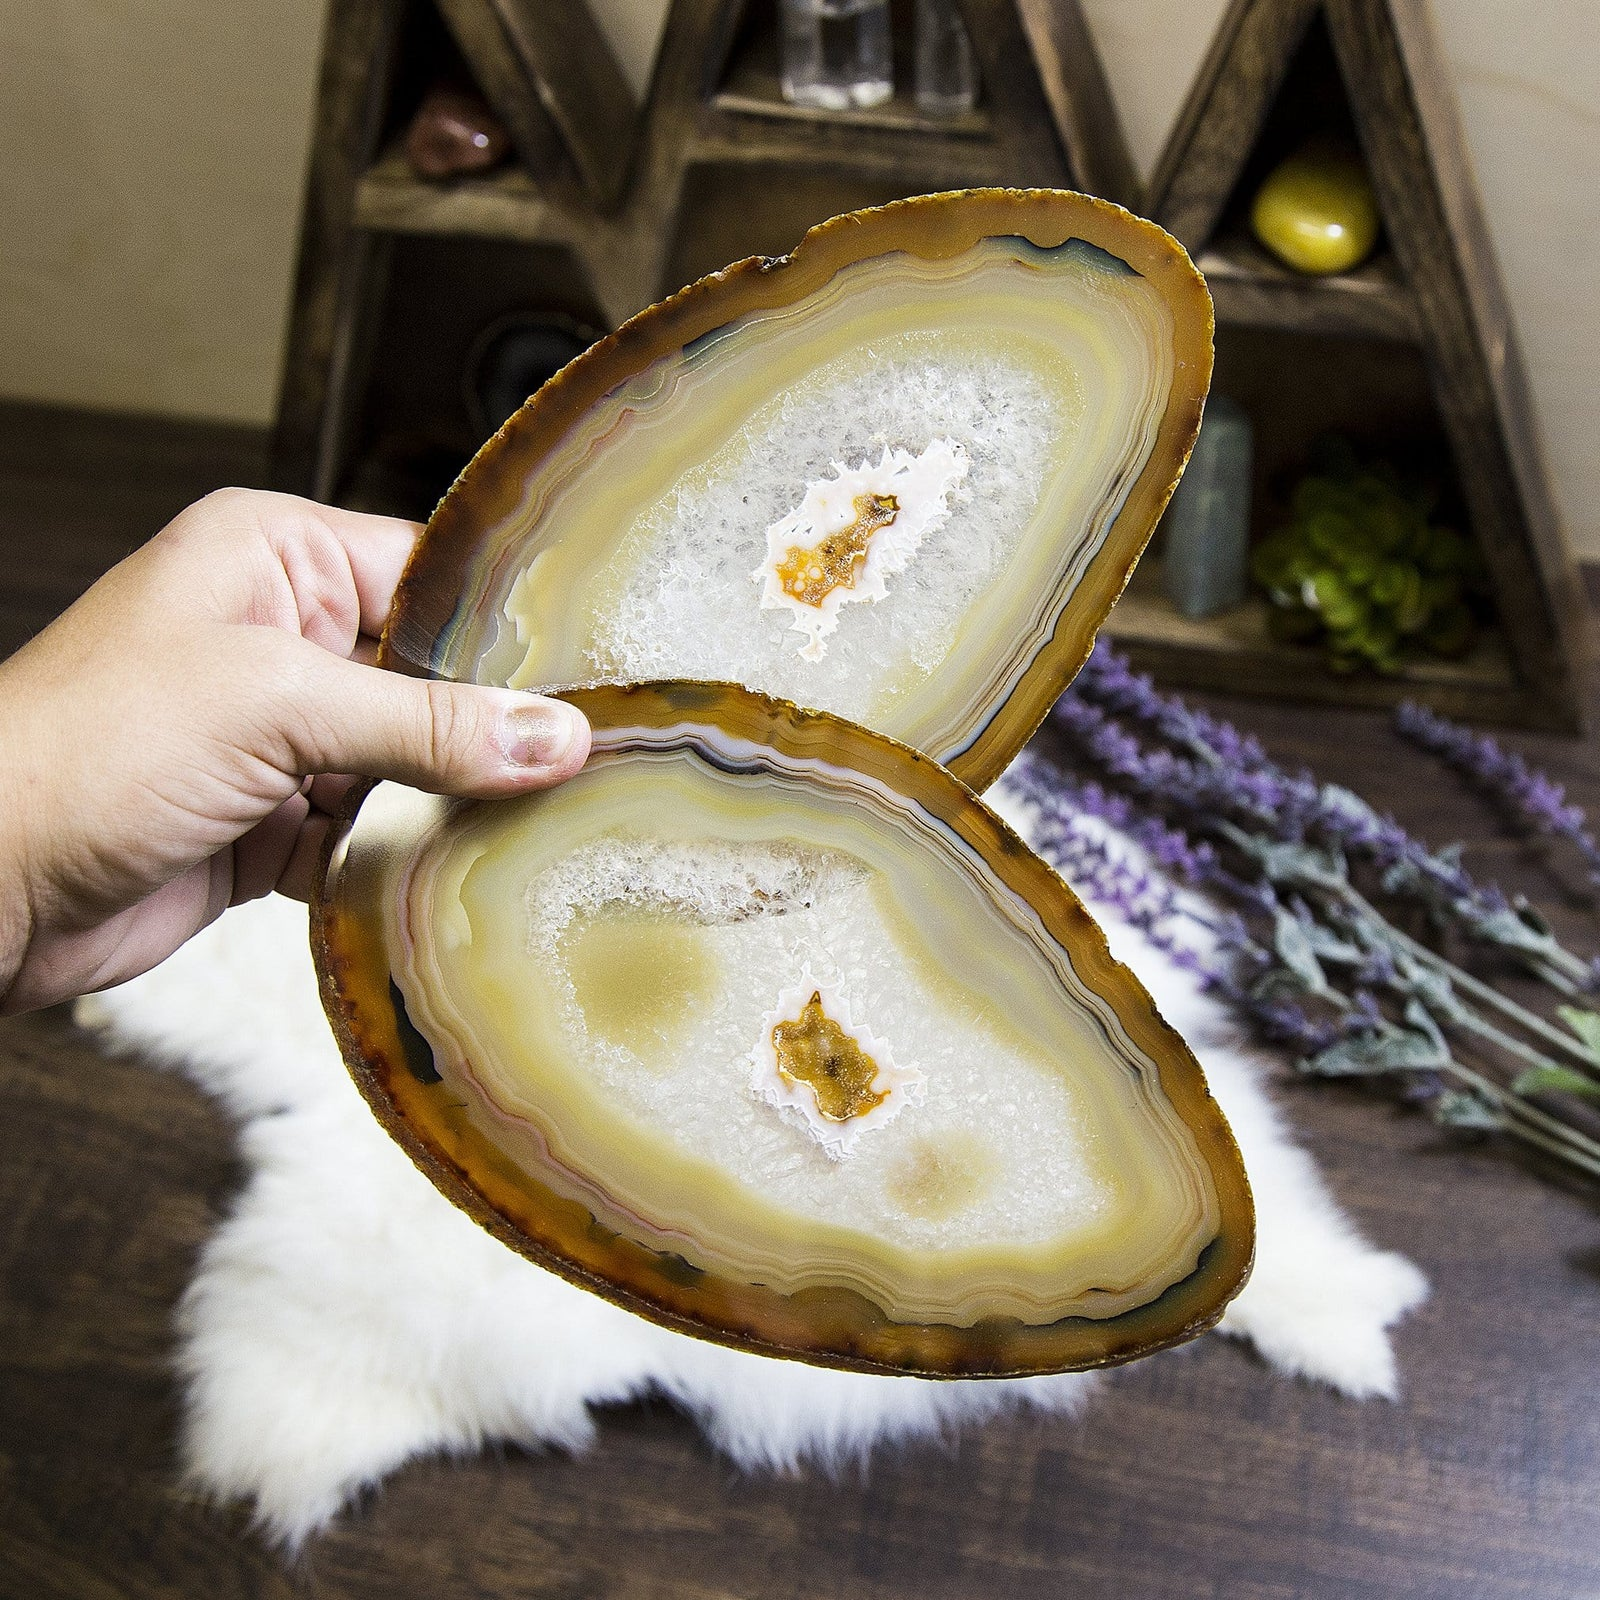 2 pcs Natural Agate Slices - Set of TWO Agate with Markings - Crystal Collection (RK129B11-04)